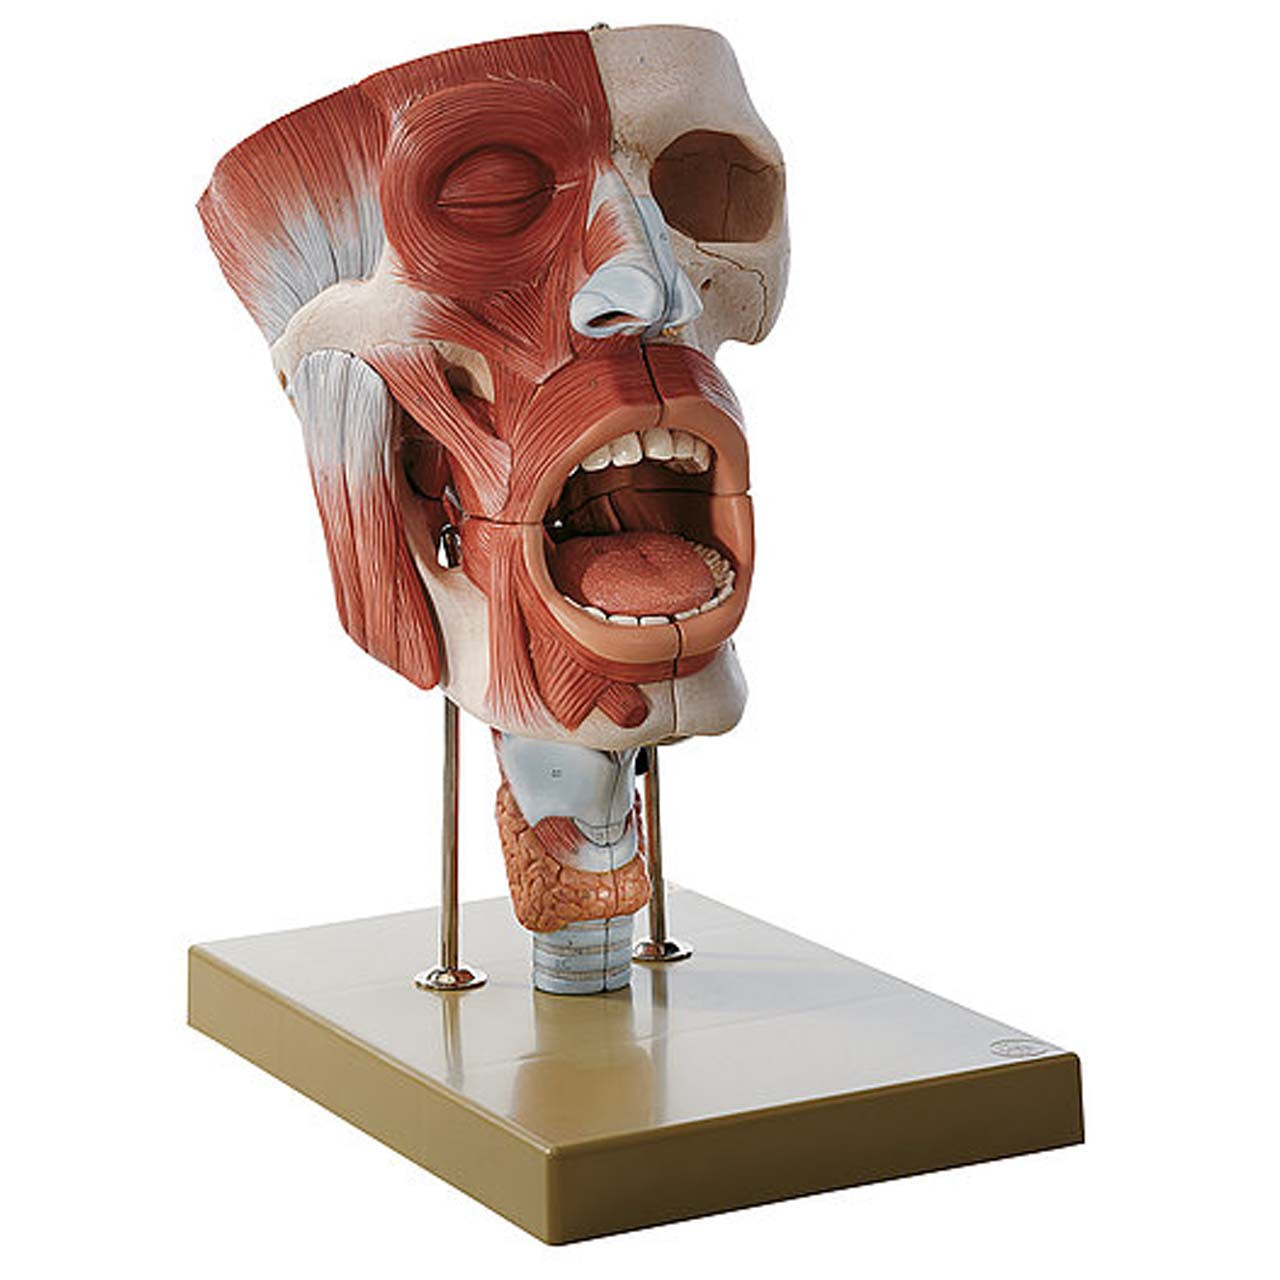 FS5 - Cavities of Nose, Mouth and Throat with Larynx